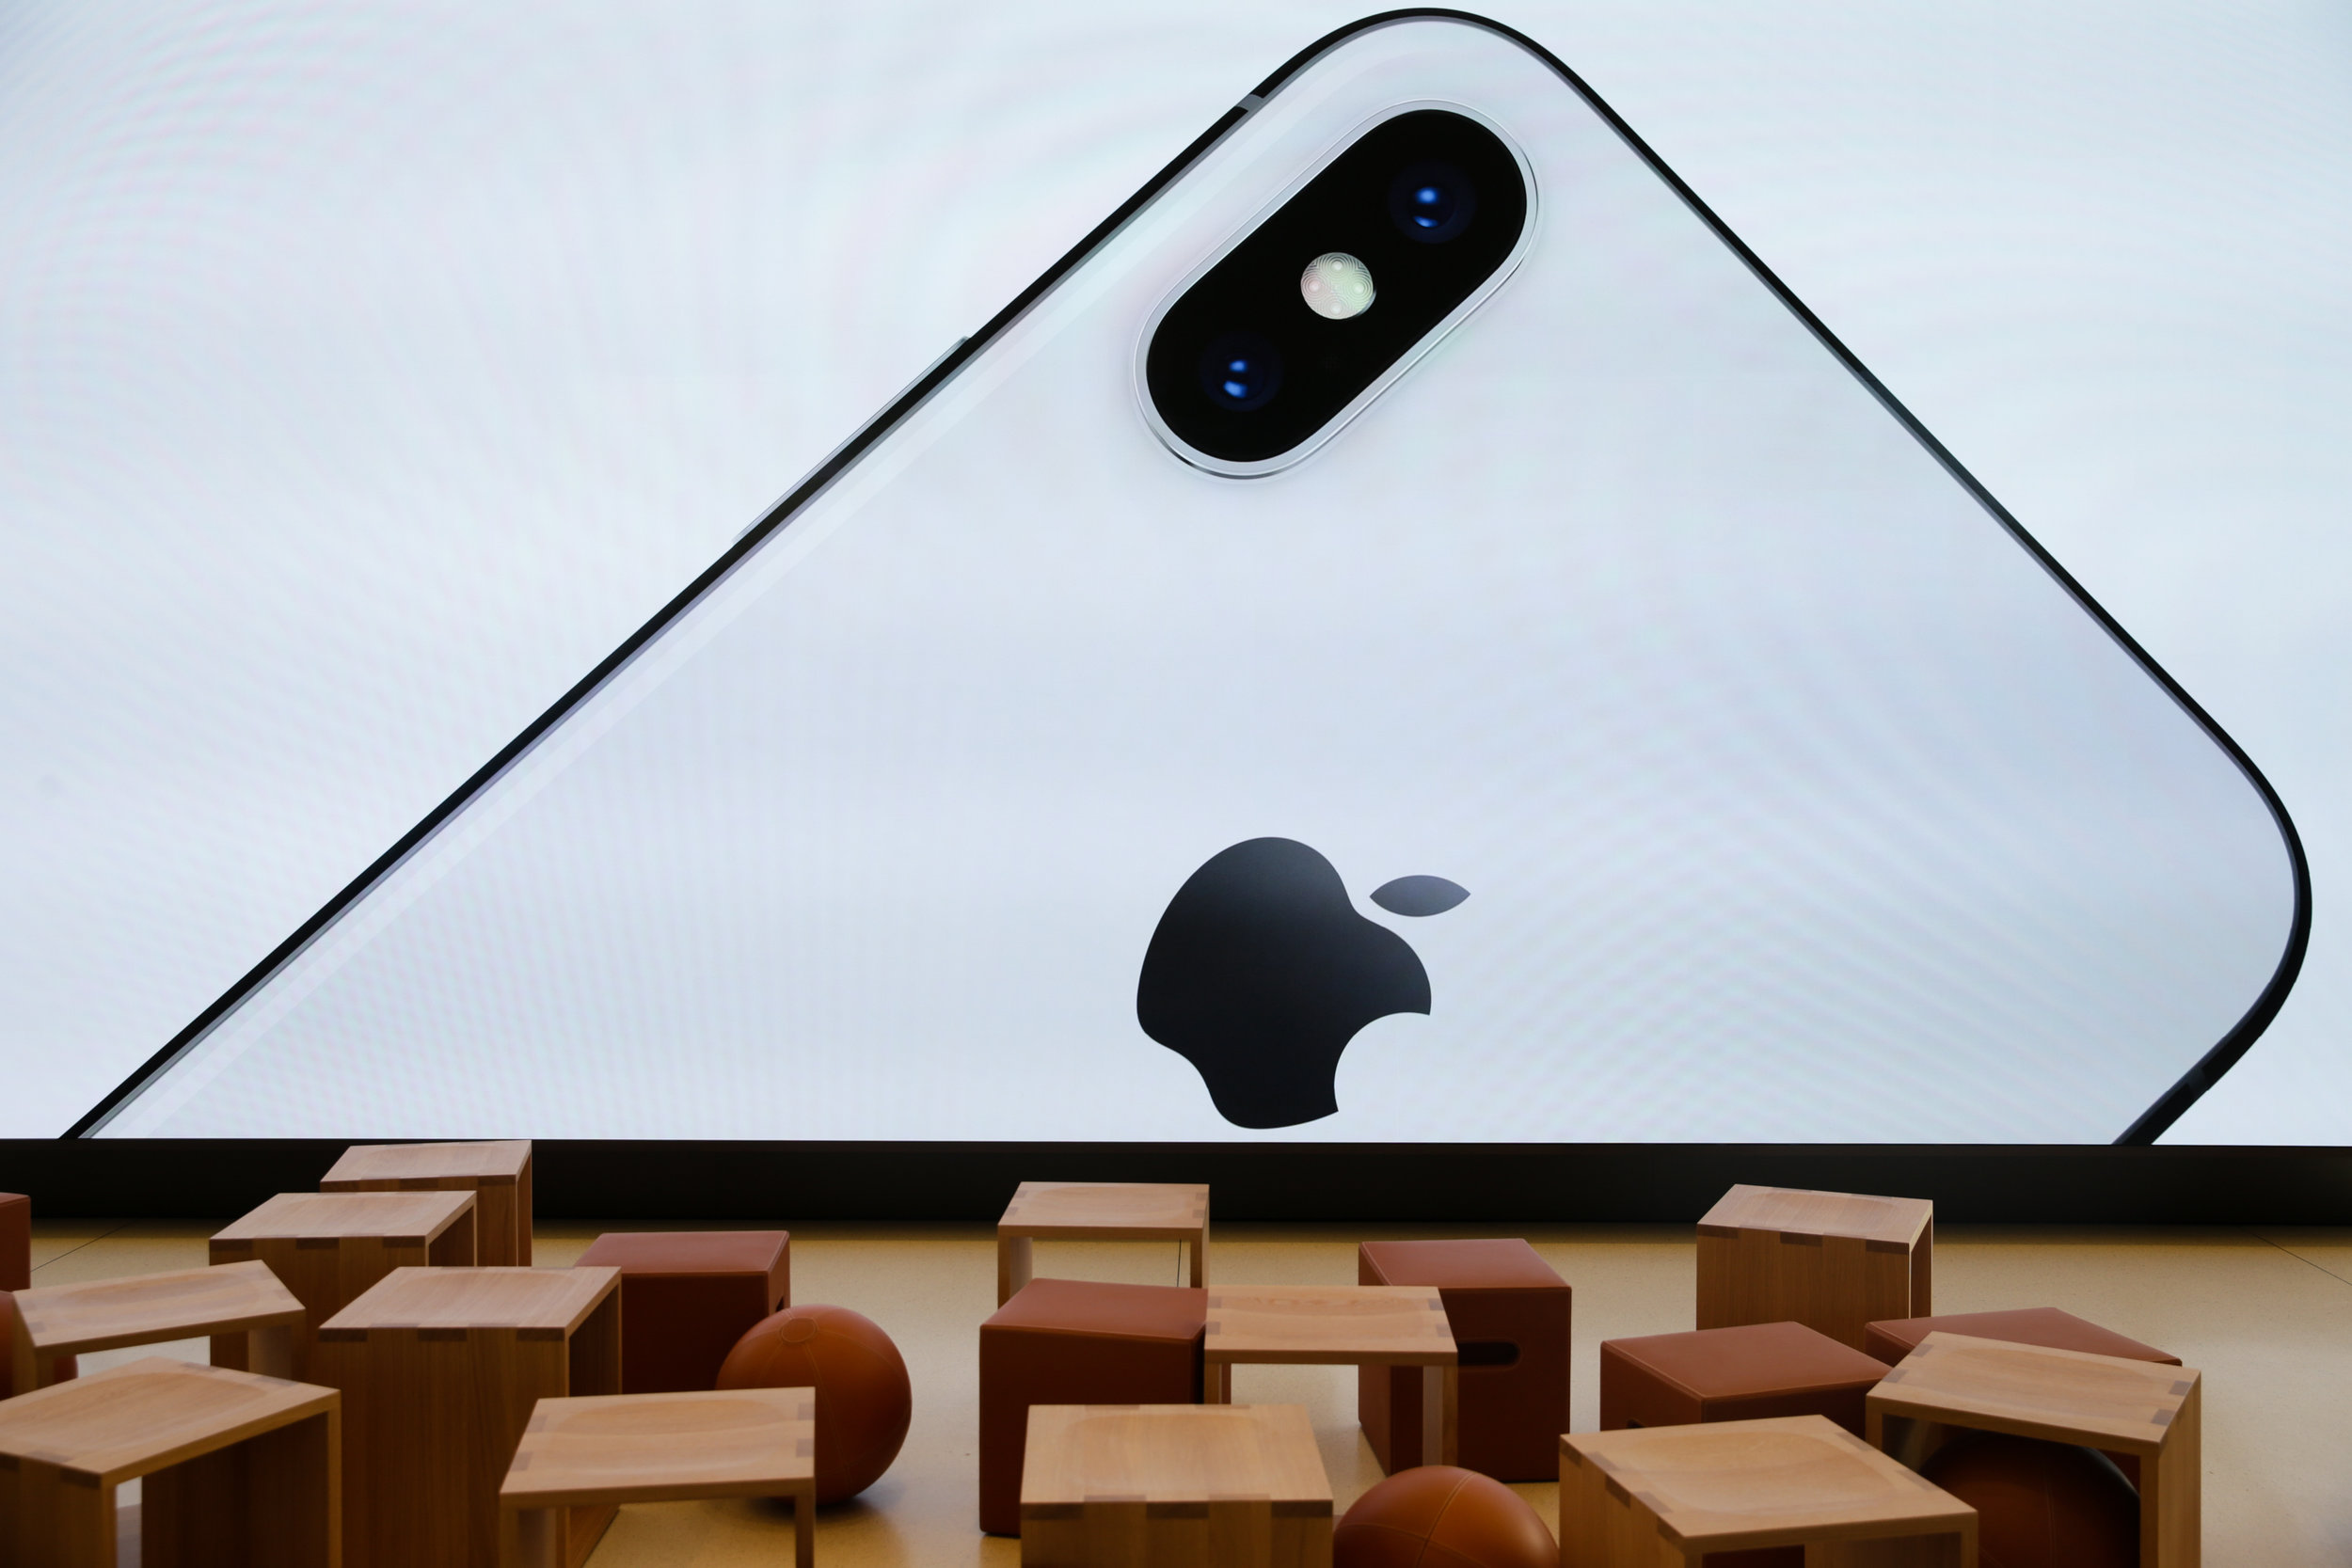 A large screen displays an image of the iPhone X at the Apple Park Visitor Center in Cupertino, California